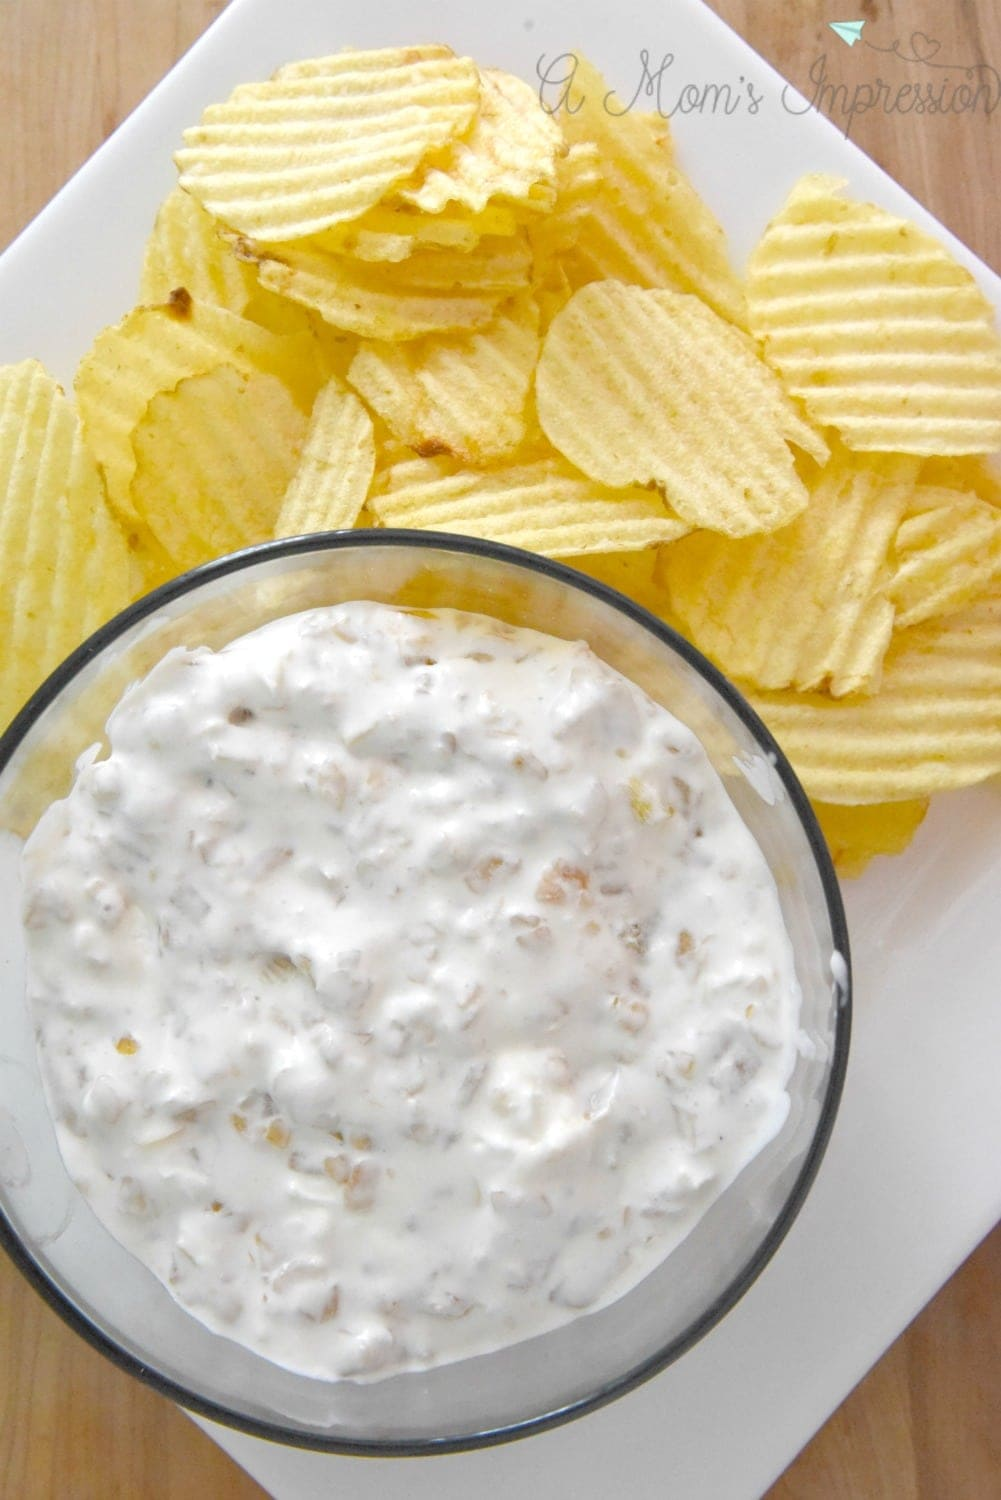 Chips and homemade onion dip